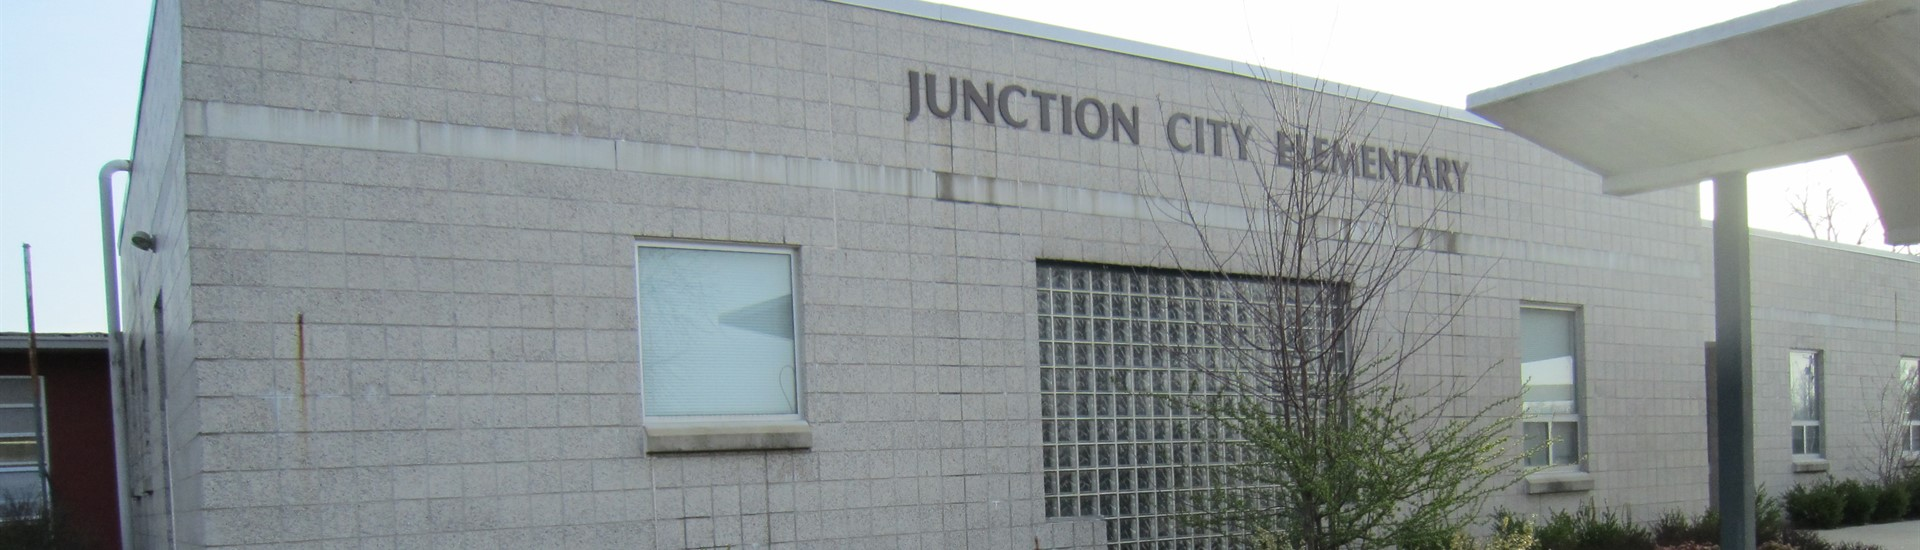 Image of Junction City Elementary School